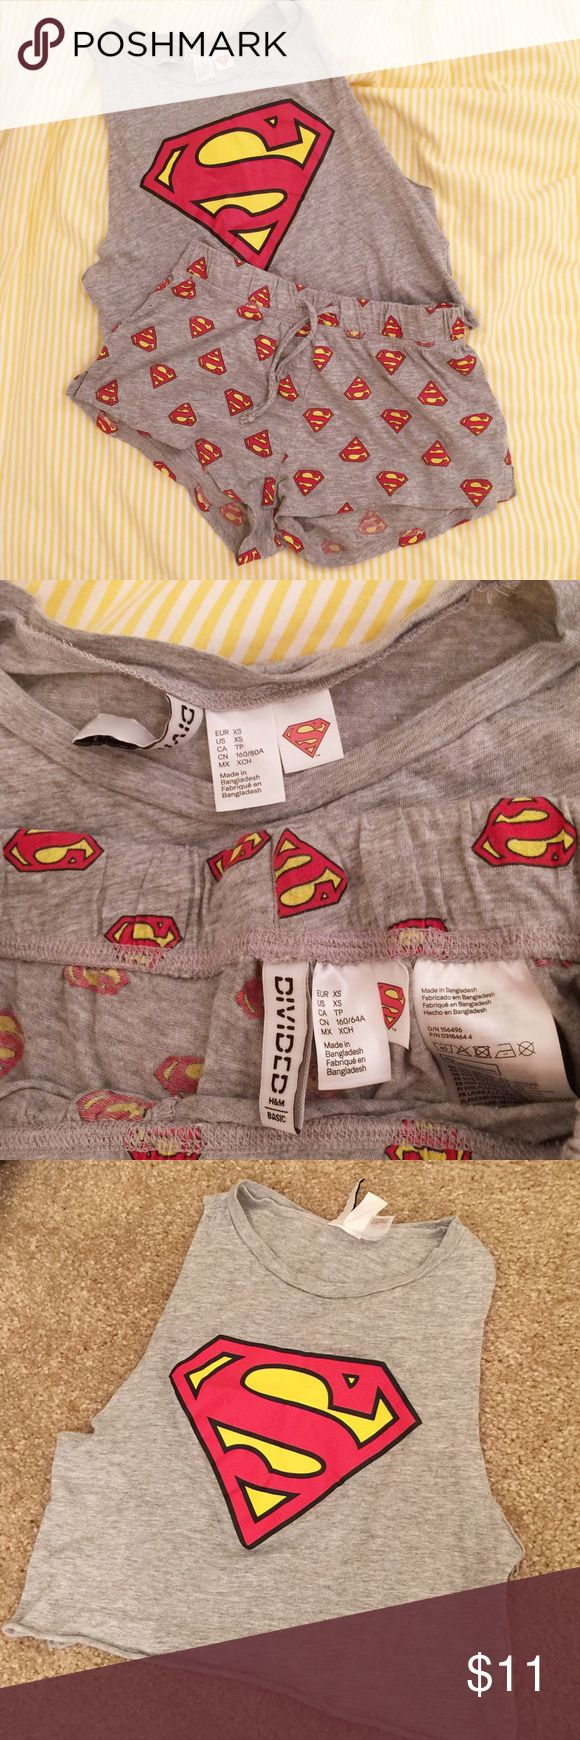 H&M superman sleepwear set Size: XS. Never been worn. In great condition. Feel free to make an offer. :) H&M Intimates & Sleepwear